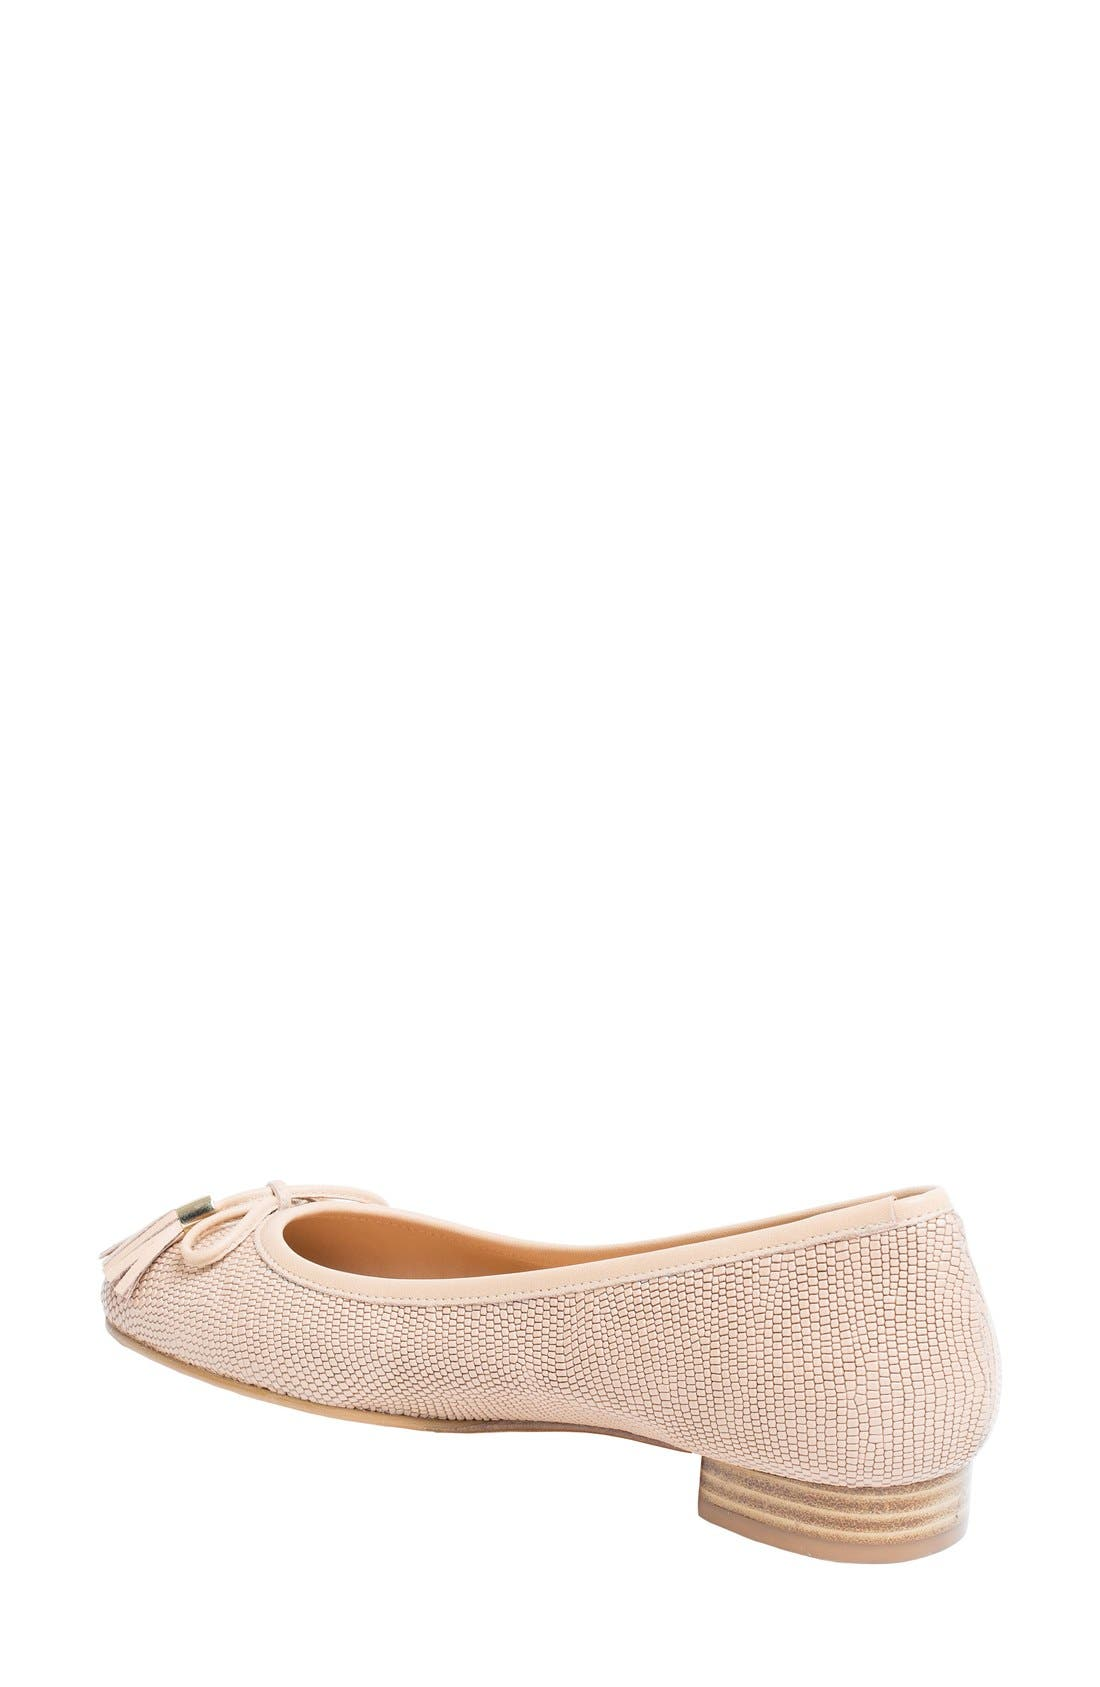 Alternate Image 2  - UKIES Lara Ballet Flat (Women)